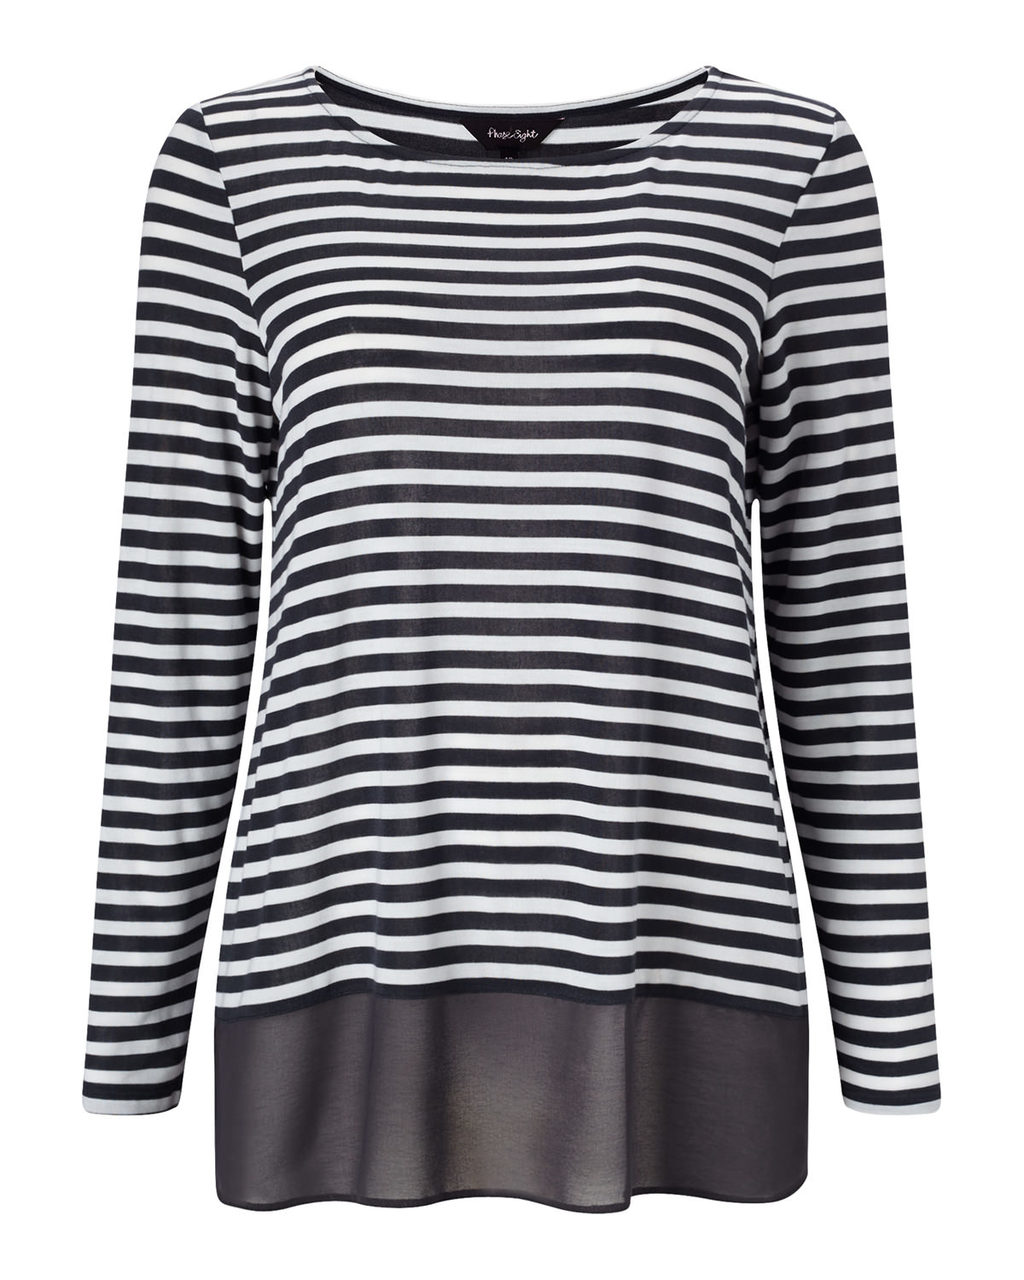 Sandie Stripe Top - neckline: round neck; pattern: horizontal stripes; length: below the bottom; secondary colour: white; predominant colour: black; occasions: casual, creative work; style: top; fibres: polyester/polyamide - stretch; fit: body skimming; sleeve length: long sleeve; sleeve style: standard; pattern type: fabric; texture group: other - light to midweight; pattern size: big & busy (top); season: a/w 2015; wardrobe: basic